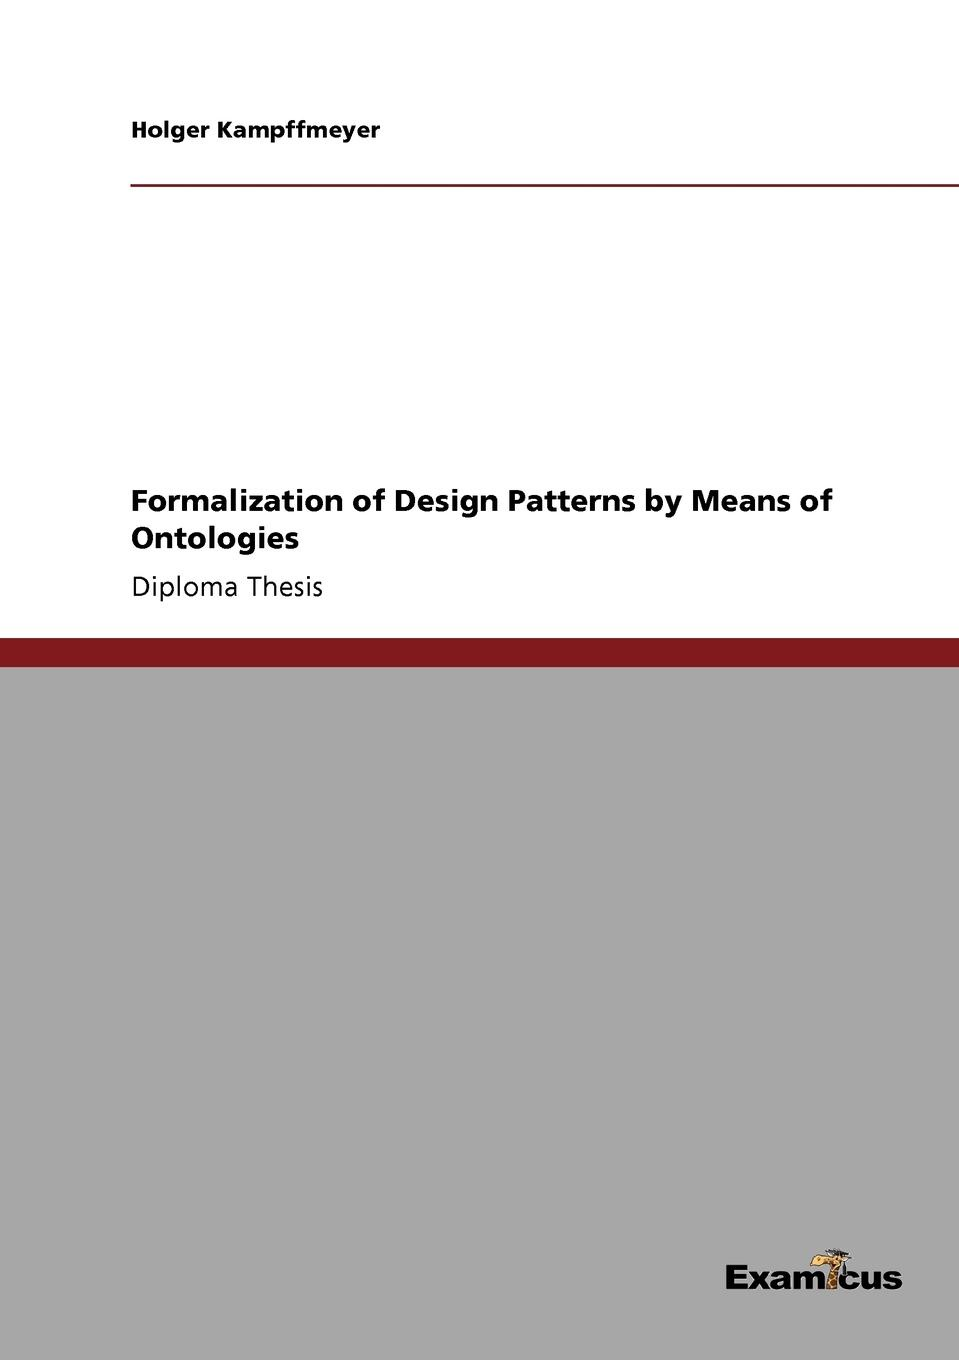 Holger Kampffmeyer Formalization of Design Patterns by Means of Ontologies learning javascript design patterns